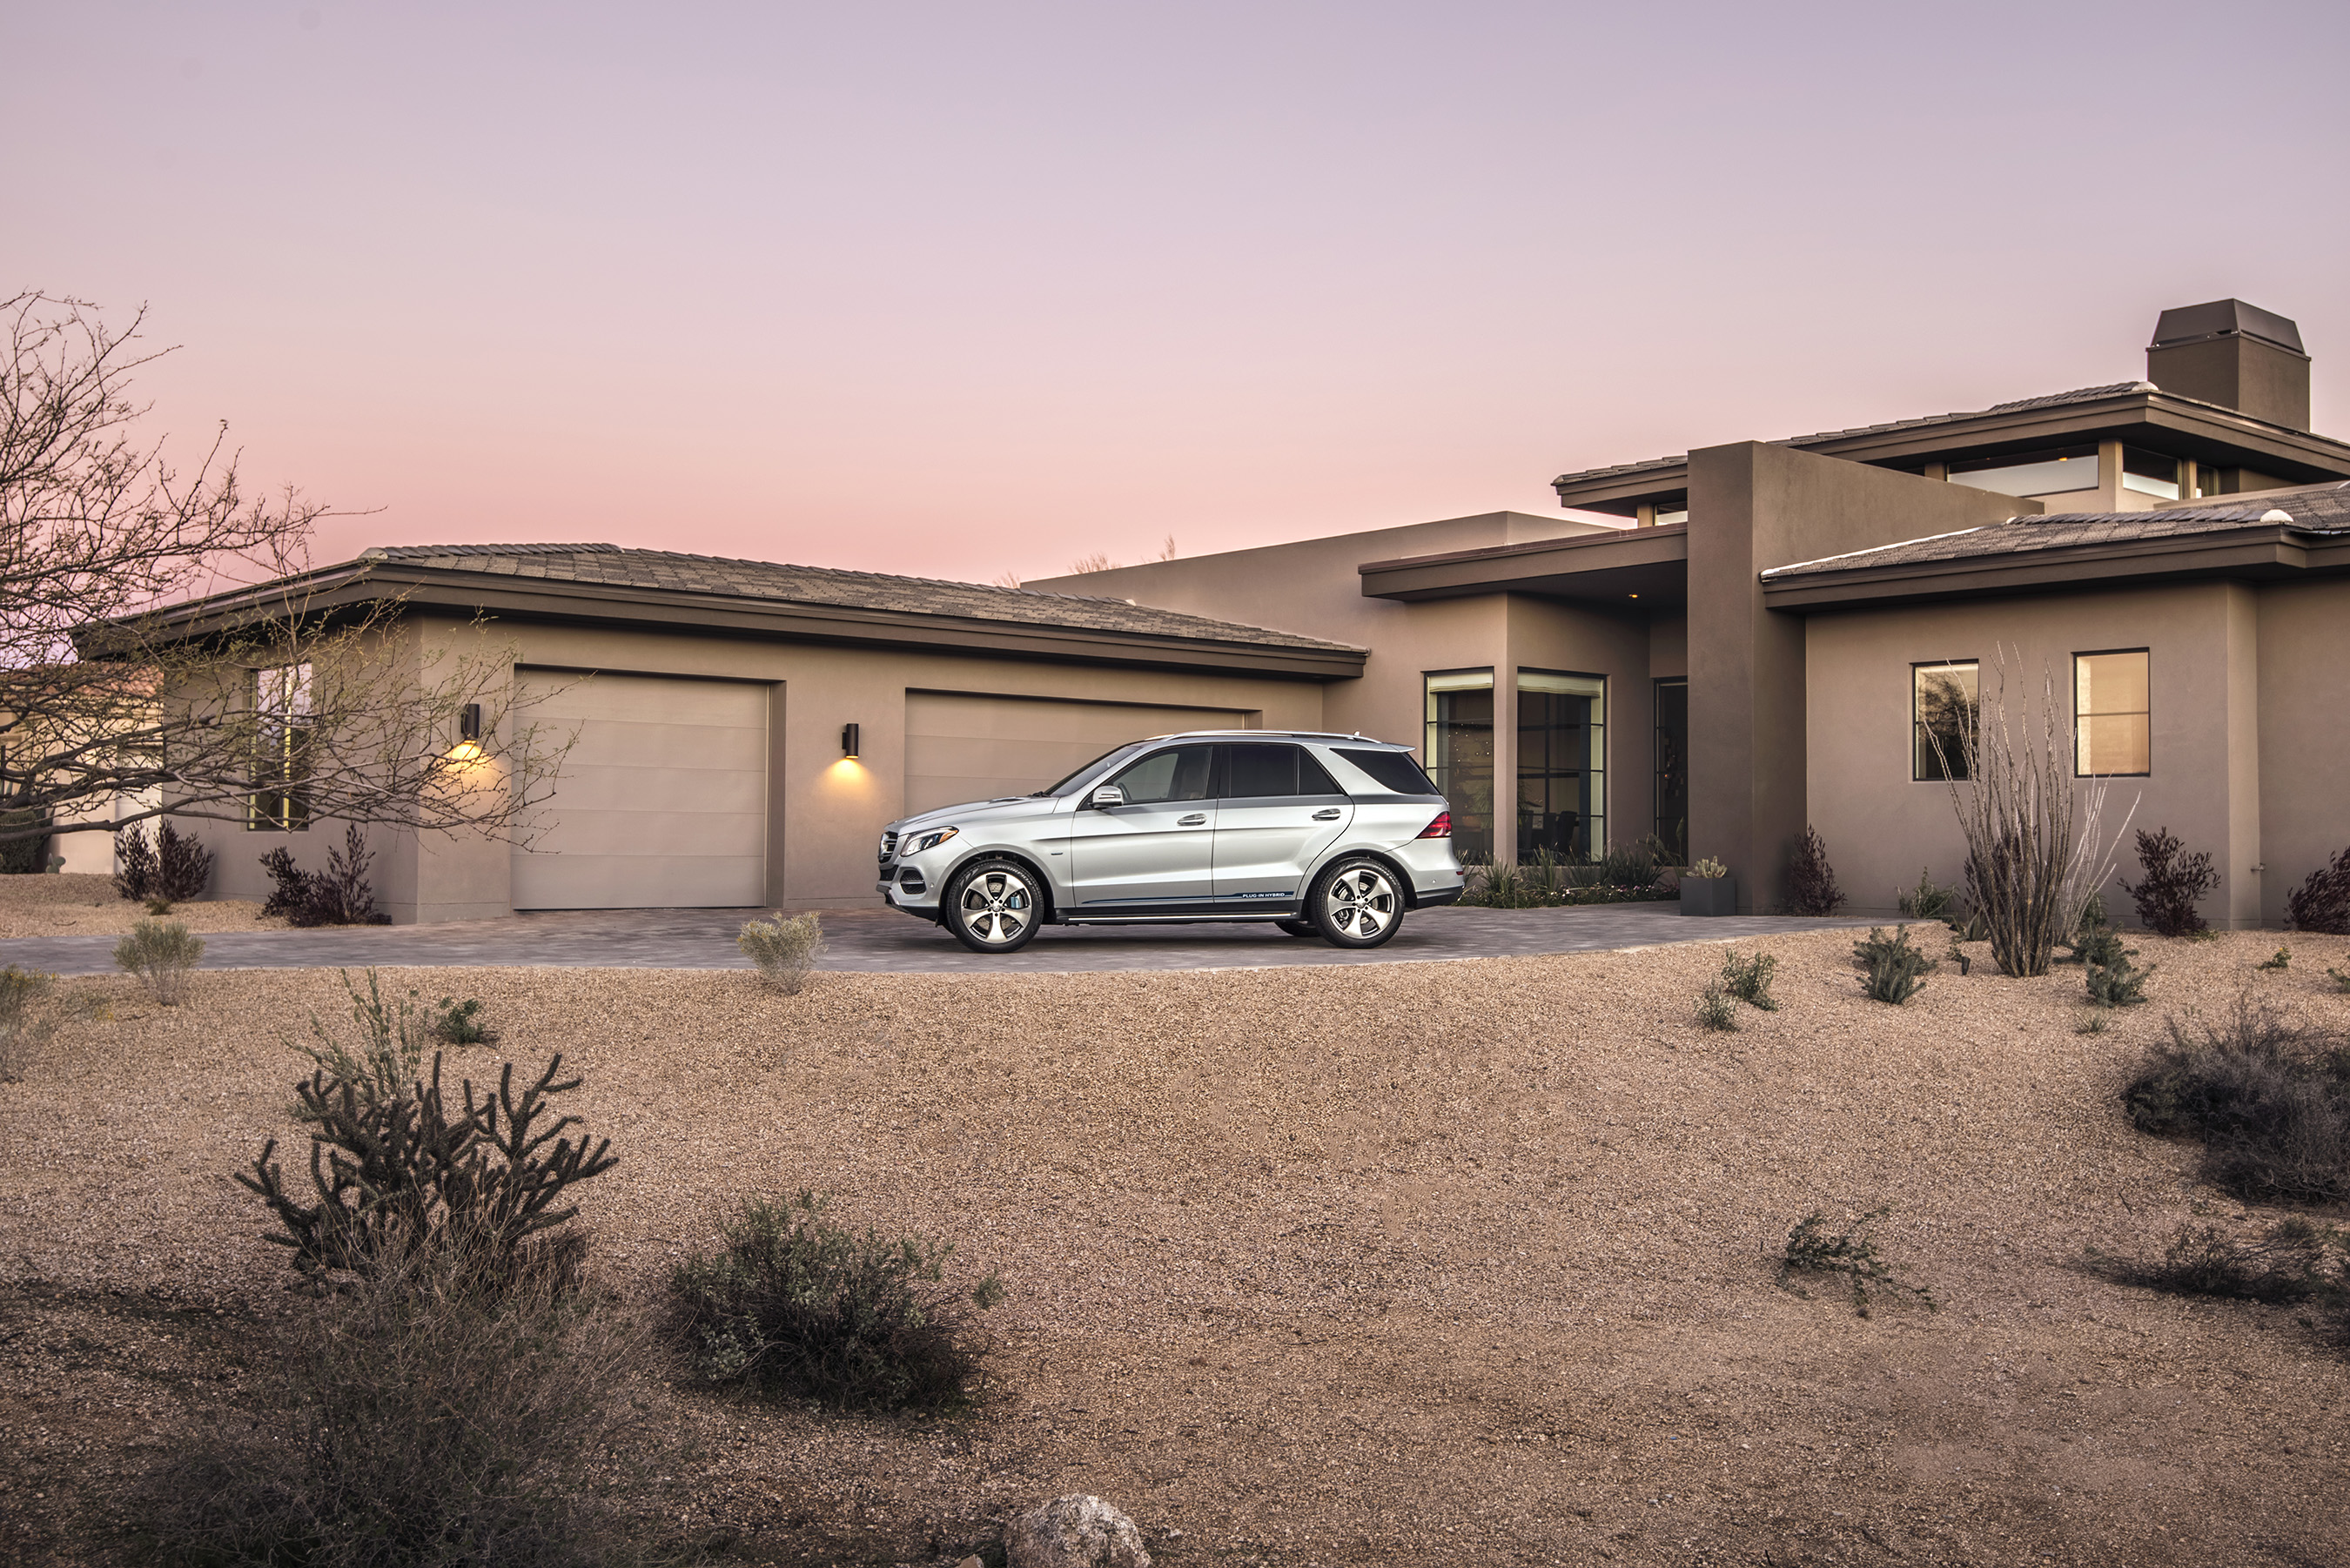 The HGTV Smart Home 2017 located in Scottsdale, Arizona, is a Southwestern showstopper. Beginning April 12, viewers can visit HGTV.com to enter for a chance to win the fully furnished home, plus a 2017 Mercedes-Benz GLE 550e 4MATIC automobile and $100,000 courtesy of national mortgage lender Quicken Loans. It's a prize package valued at more than $1.5 million!